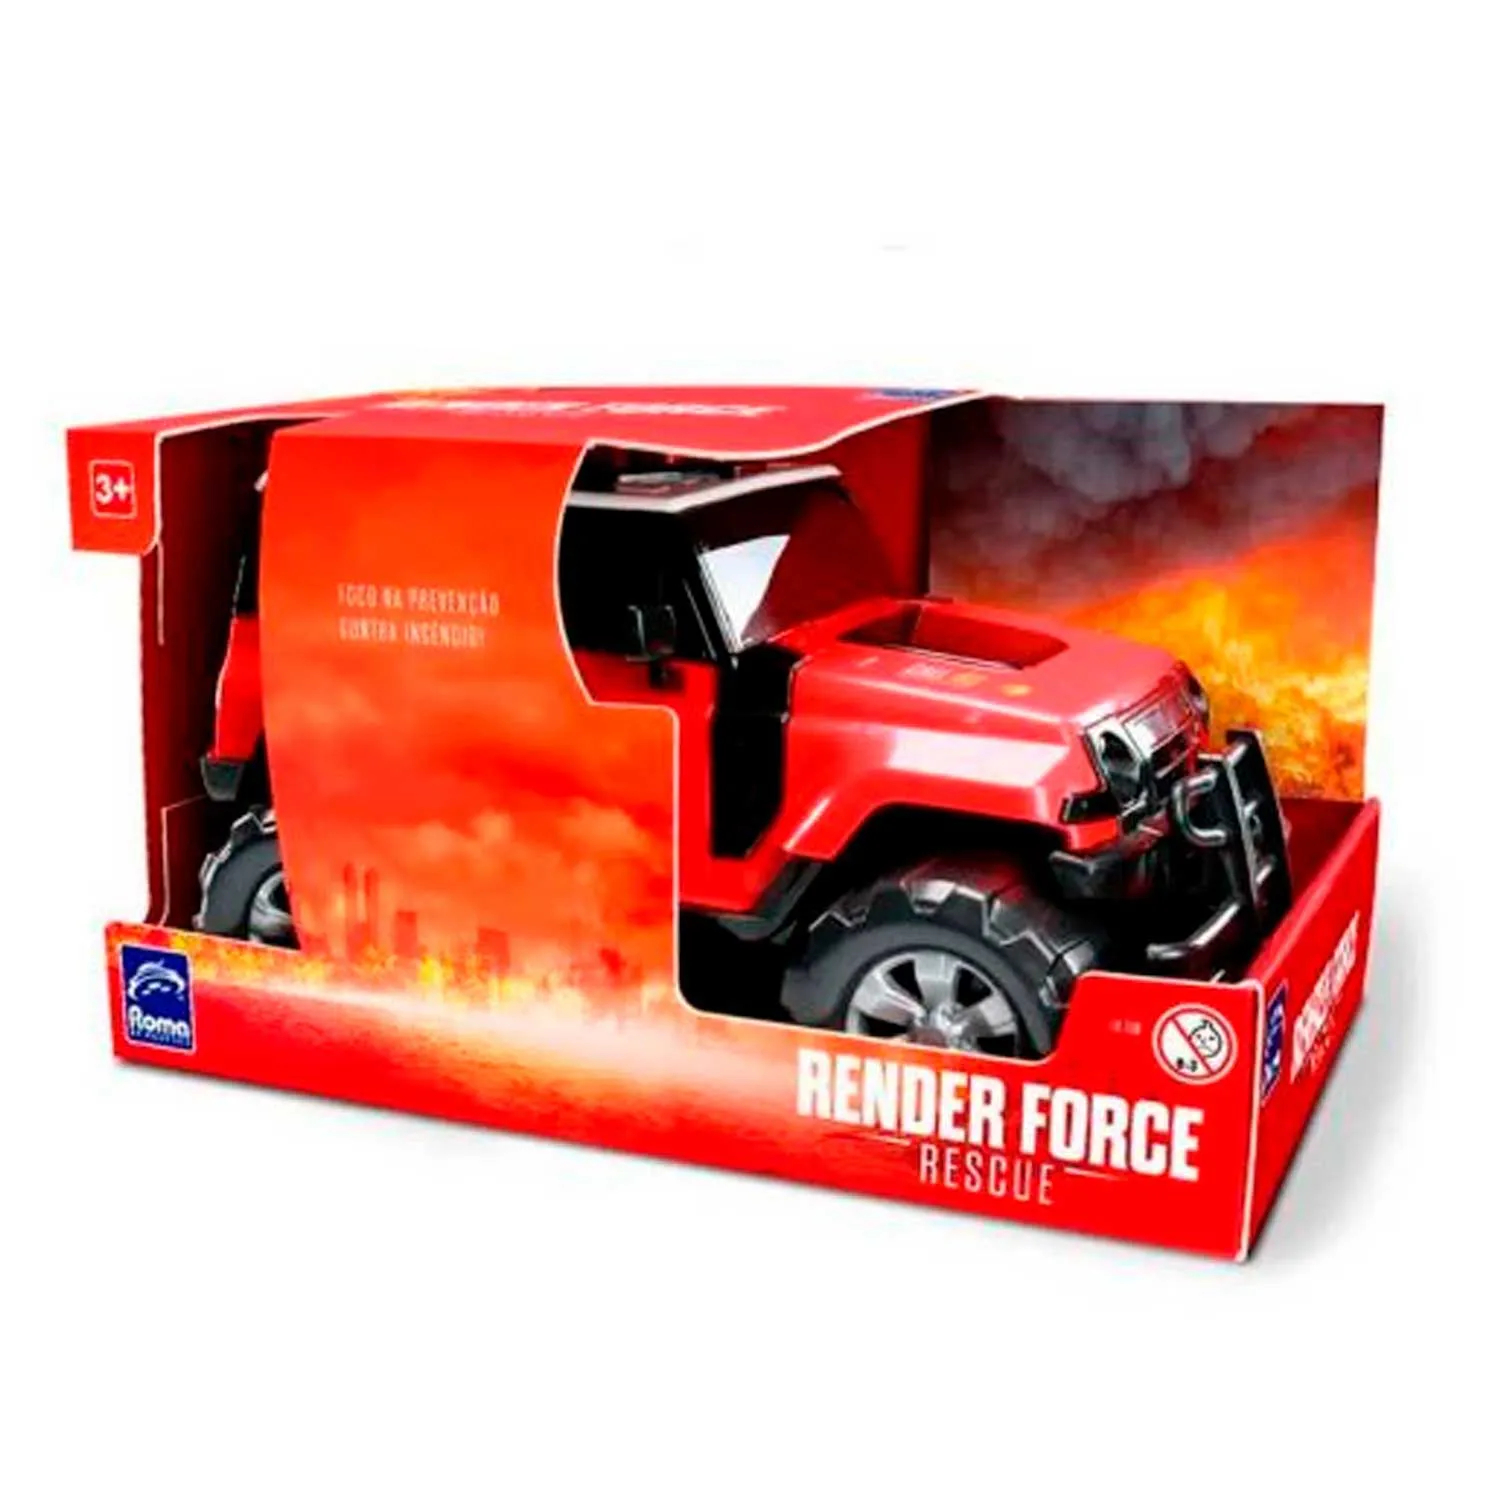 RENDER FORCE RESCUE ROMA REF:1018 3 ANOS +